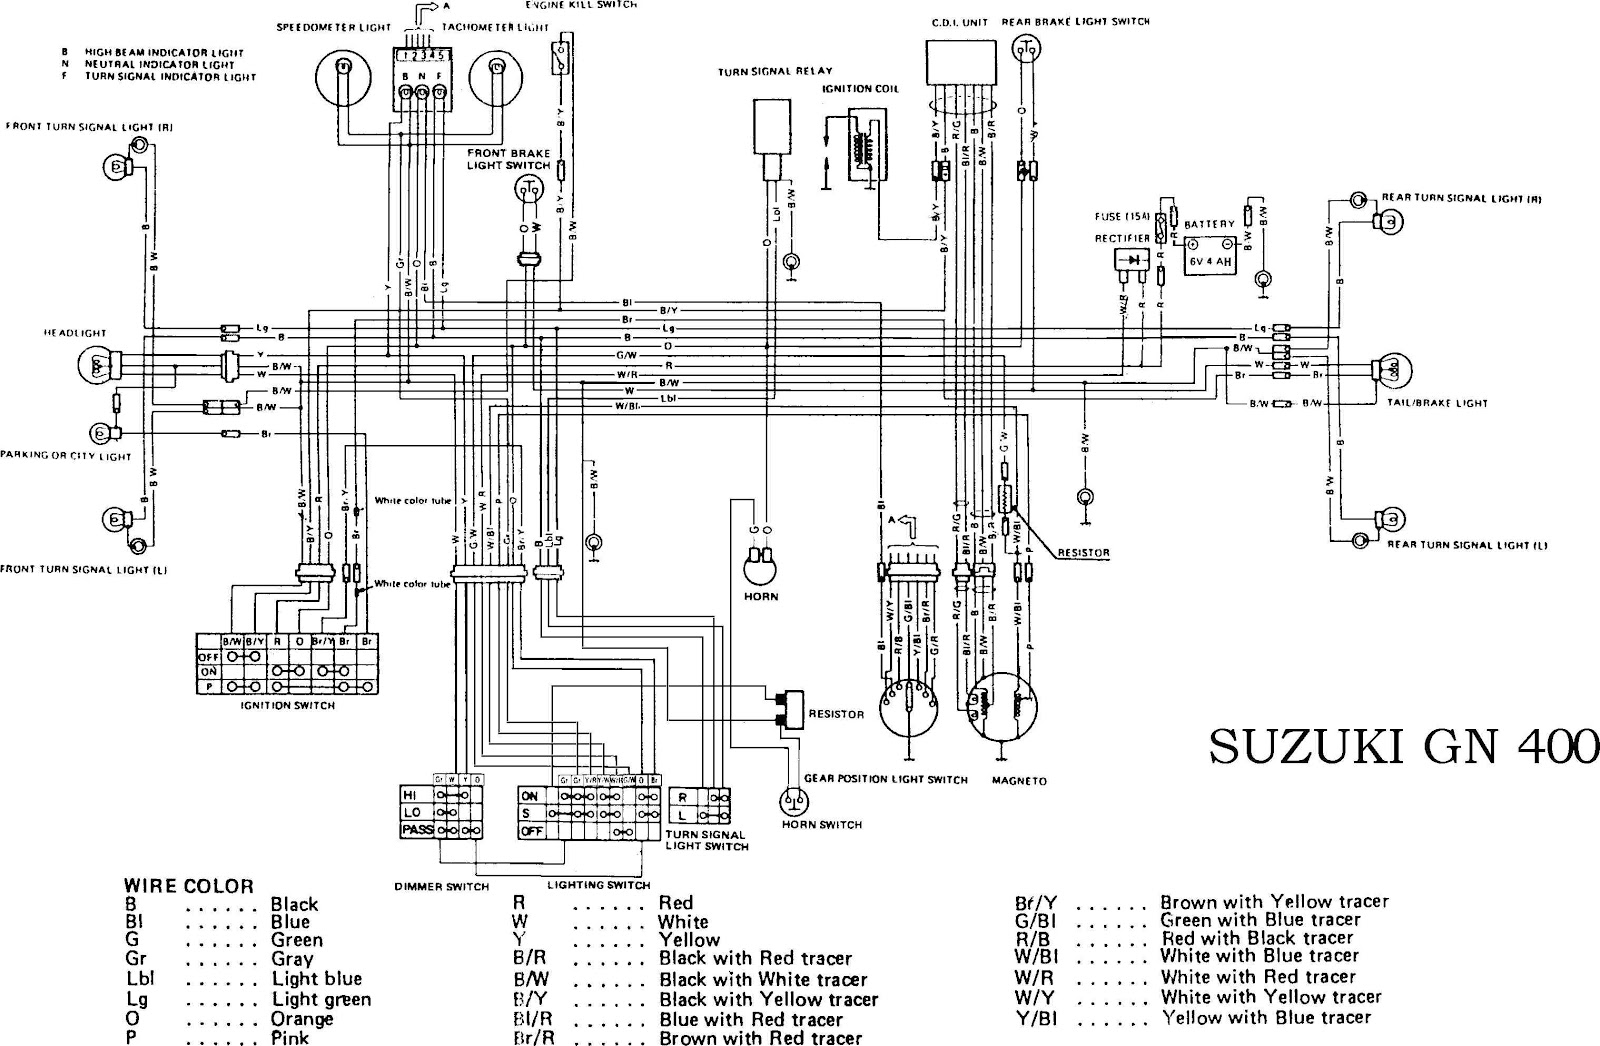 Yfz 450 Wiring Harness Schematics Diagrams Schematic Suzuki Gsx R600 Srad Motorcycle 1998 Complete Electrical 2004